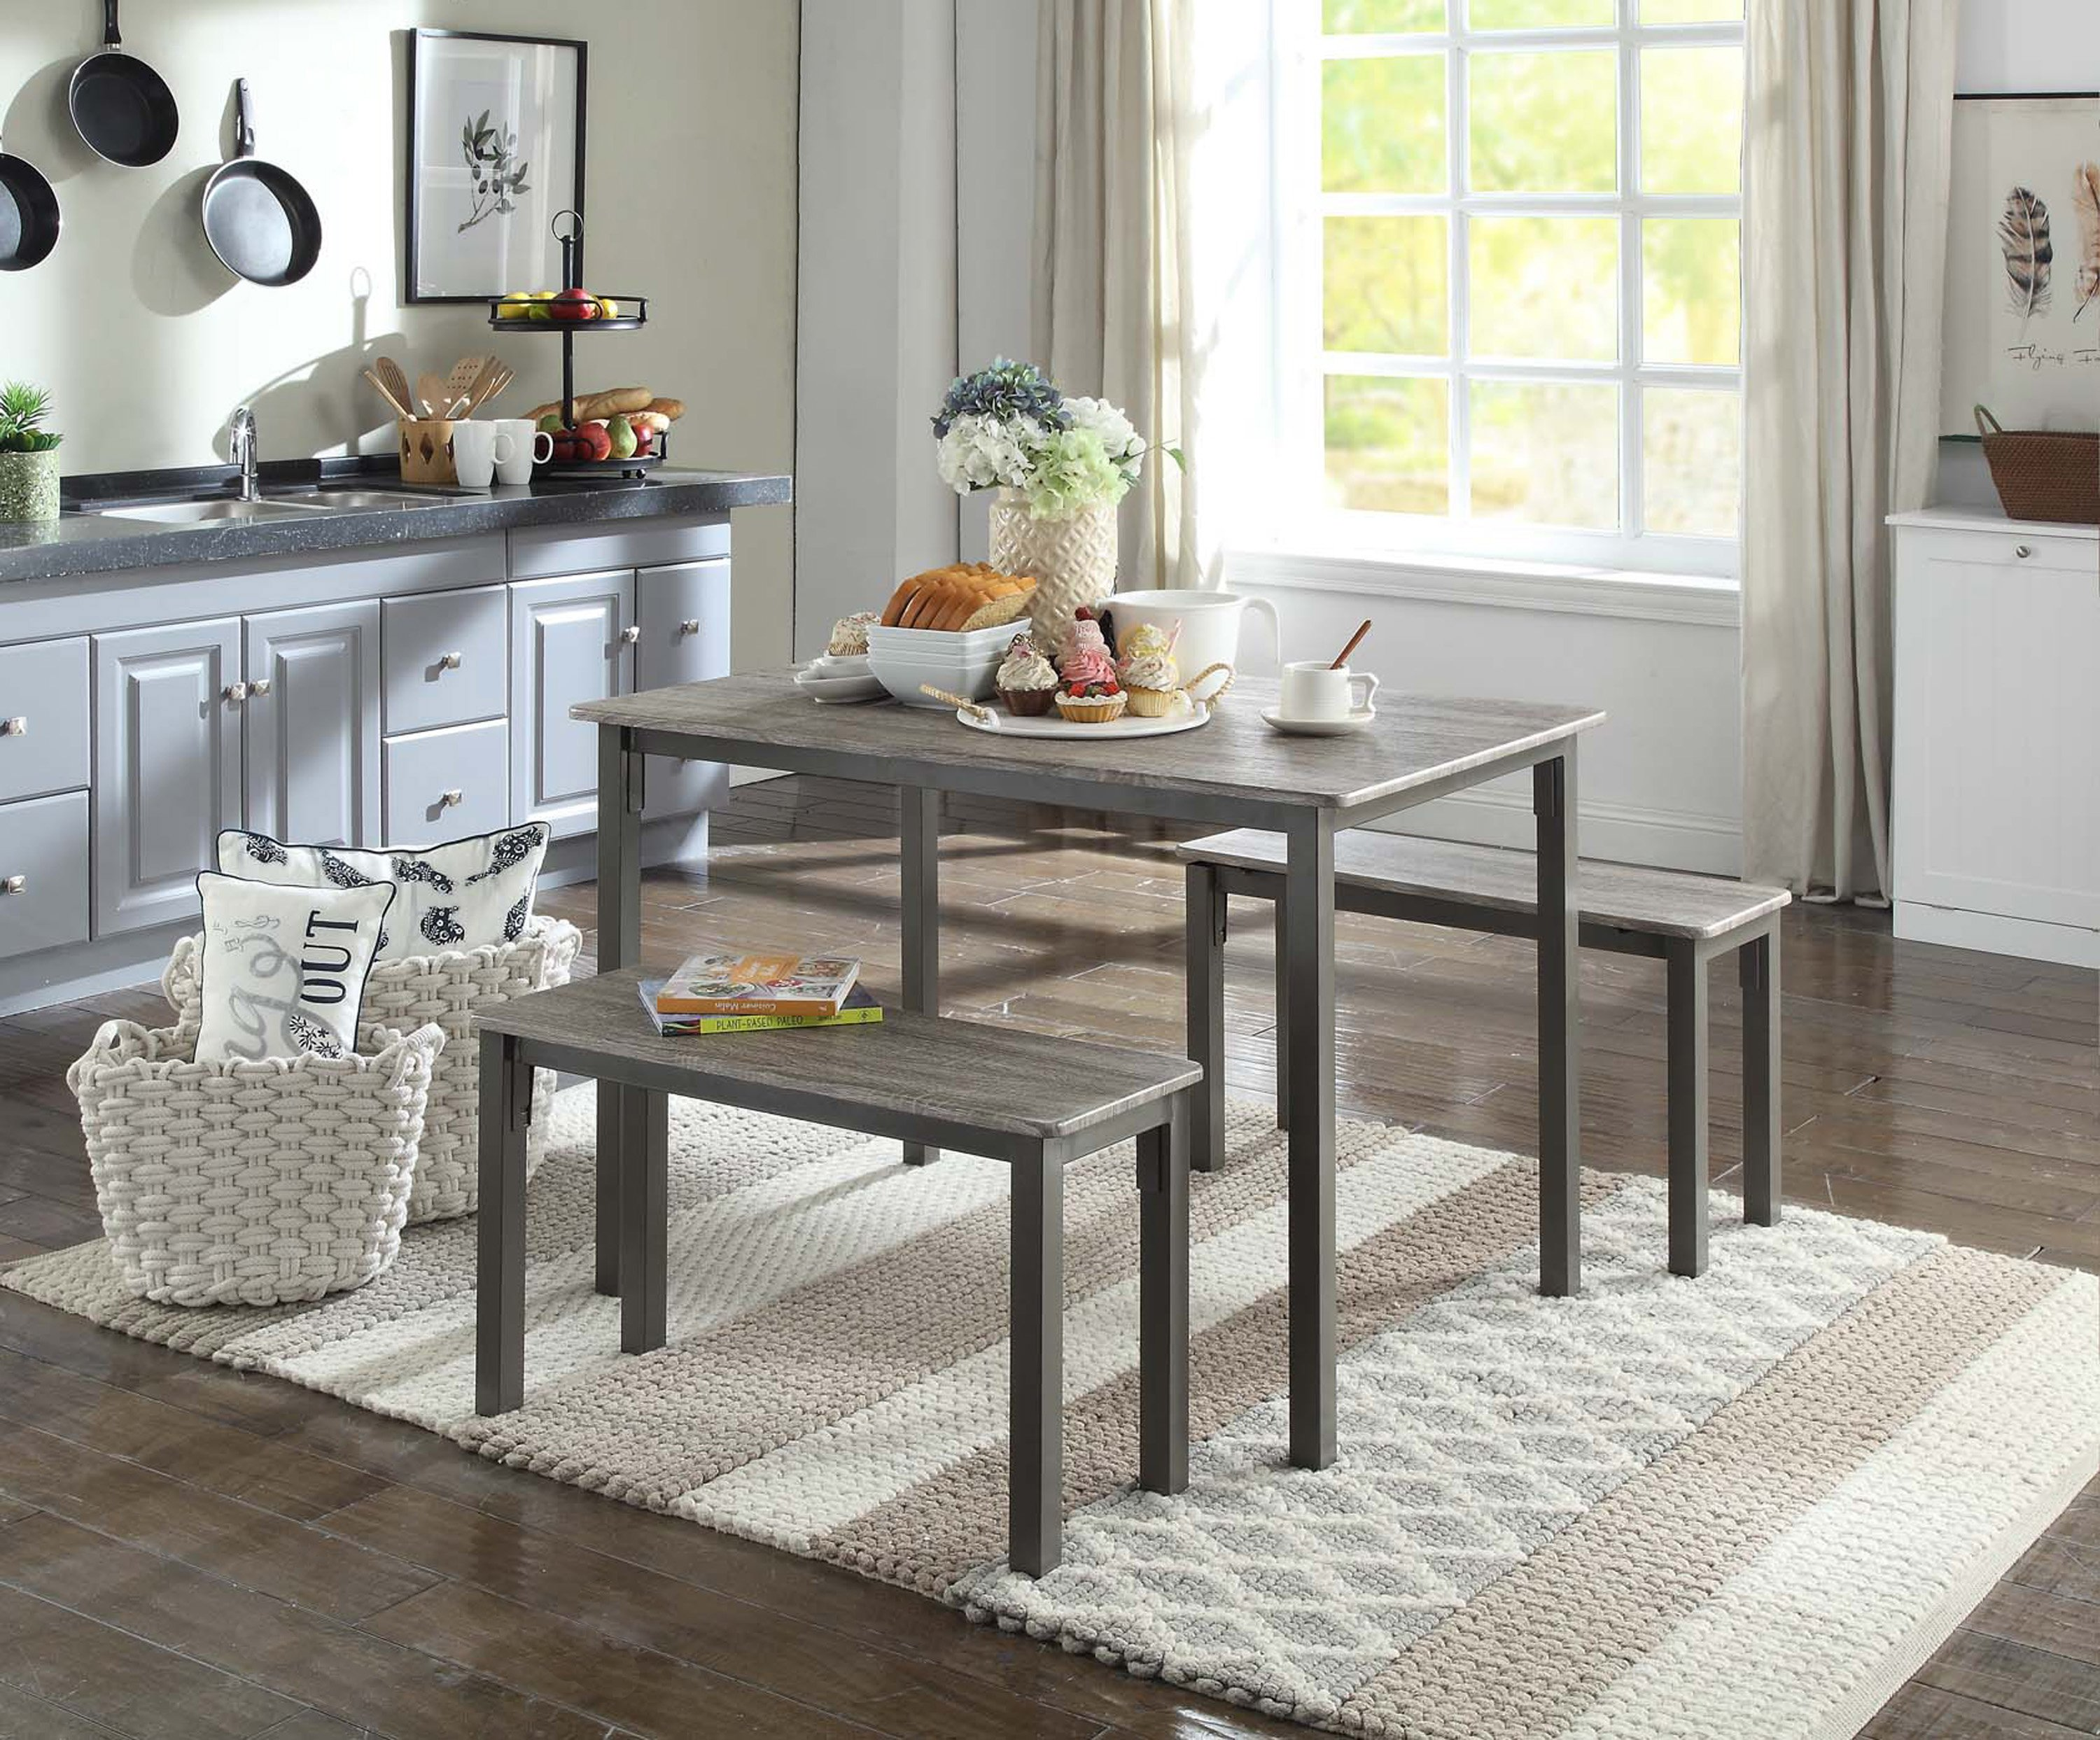 4D Concepts 159956 Tool less Boltzero Dining Table with 2 Benches, Washed Walnut & Grey Metal - 27.5 x 47.2 x 29.9 i